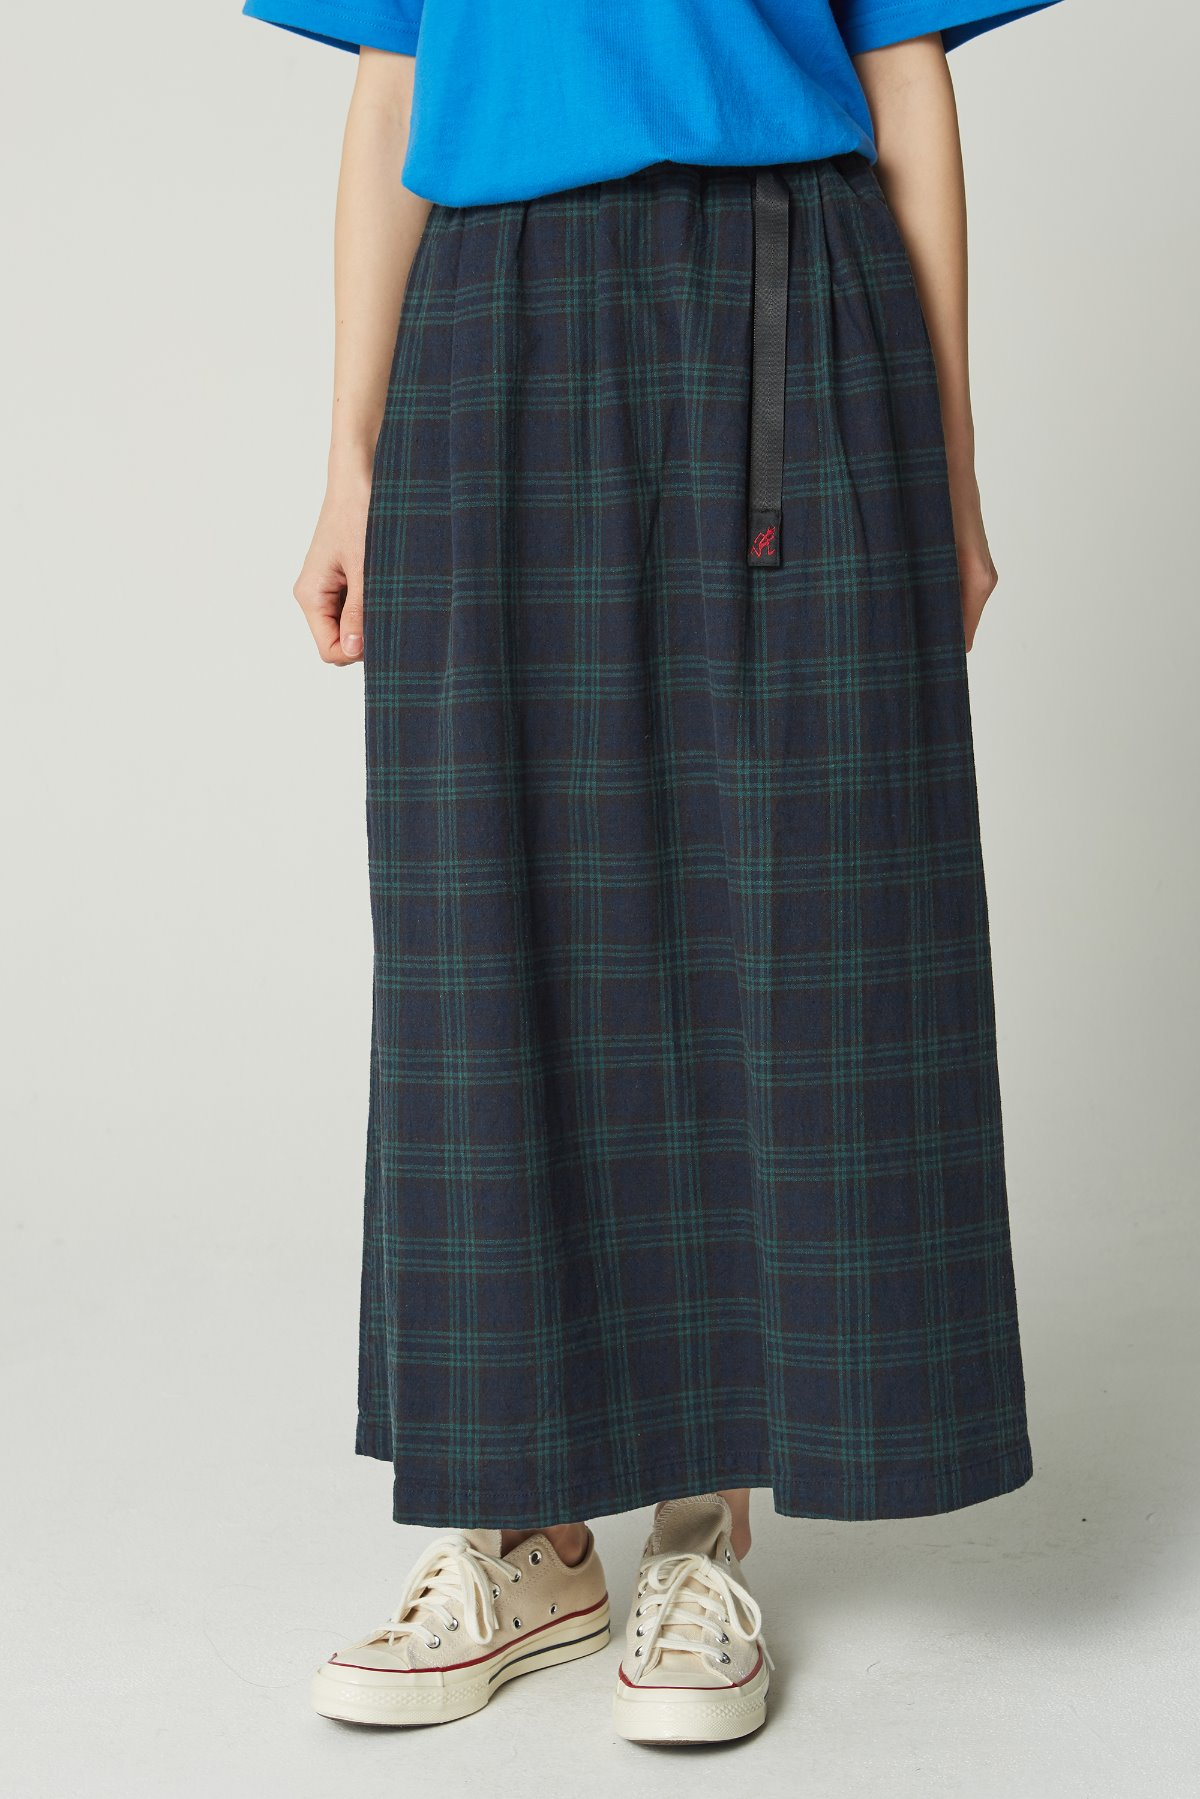 LINEN COTTON LONG FLARE SKIRT BLACK WATCH